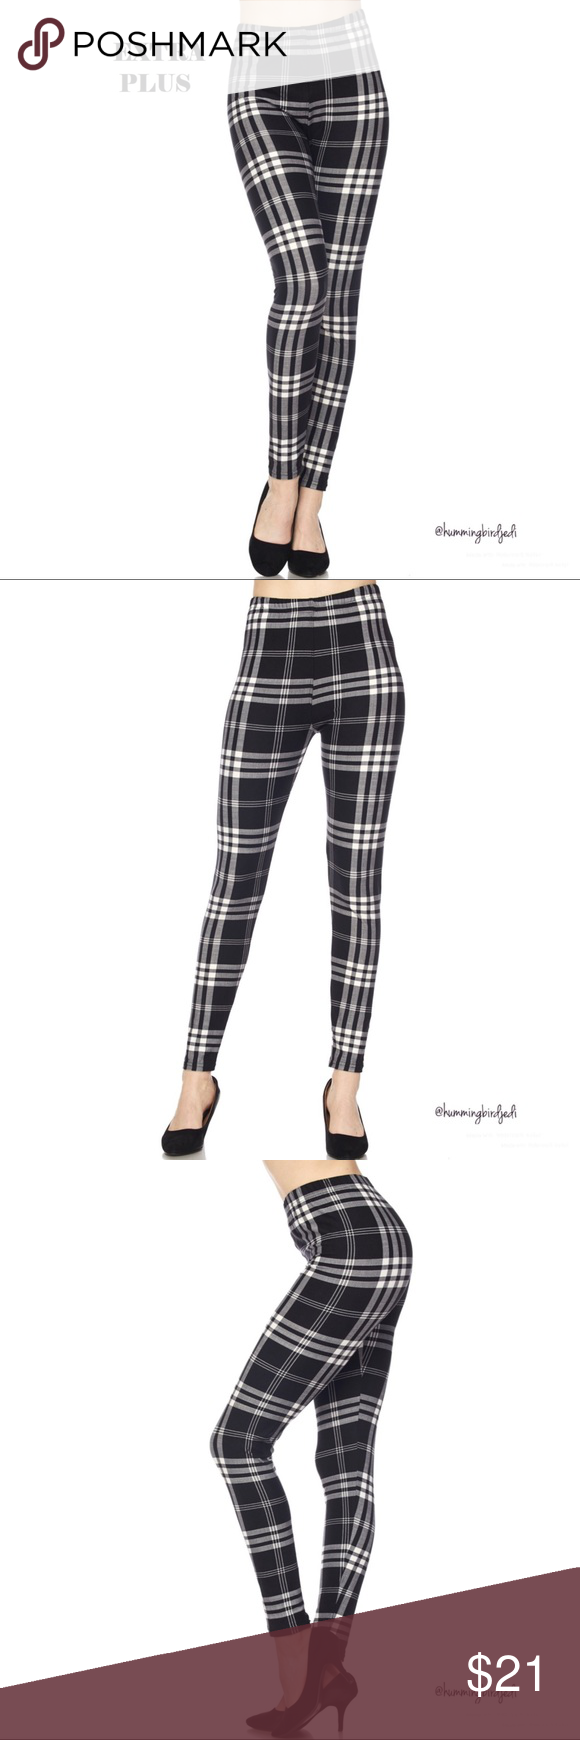 7eaa4664d1946 Extra Plus Black & White Plaid Leggings 3X-5X These are one size fits all  sizes 18/20-26/38 or 3X-5X Cross listed to show one size fits sizes With  its ...